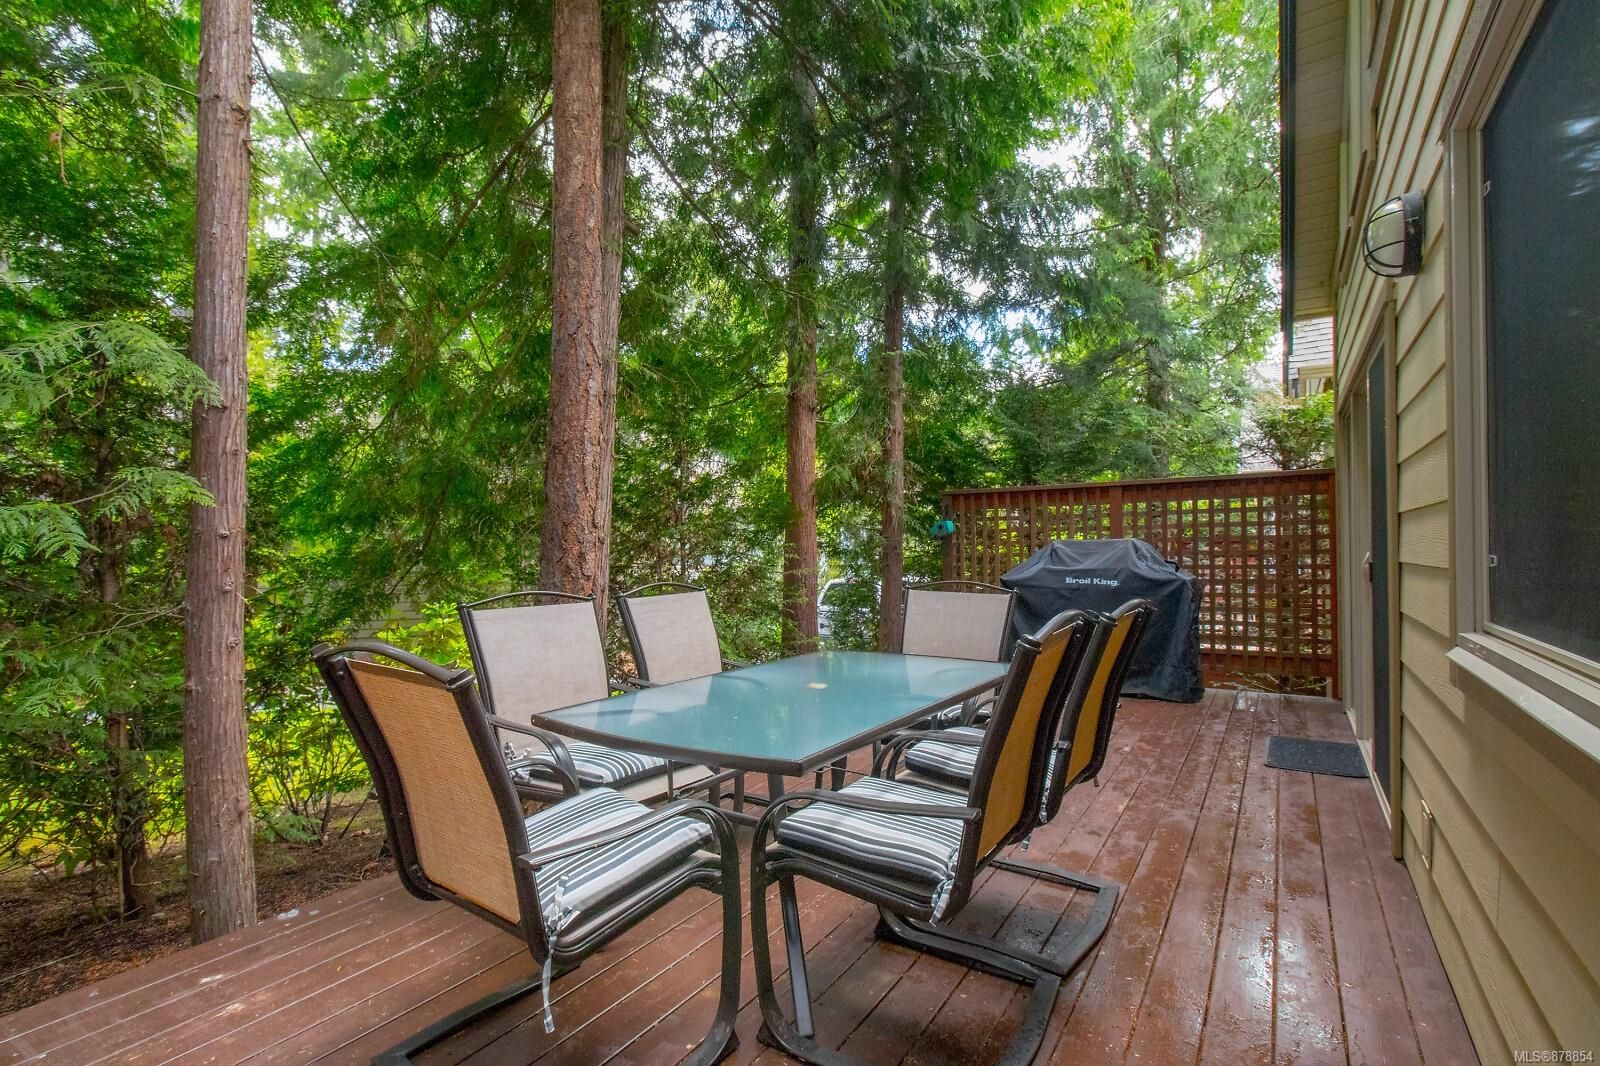 Photo 9: Photos: 223 1130 Resort Dr in : PQ Parksville Row/Townhouse for sale (Parksville/Qualicum)  : MLS®# 878854